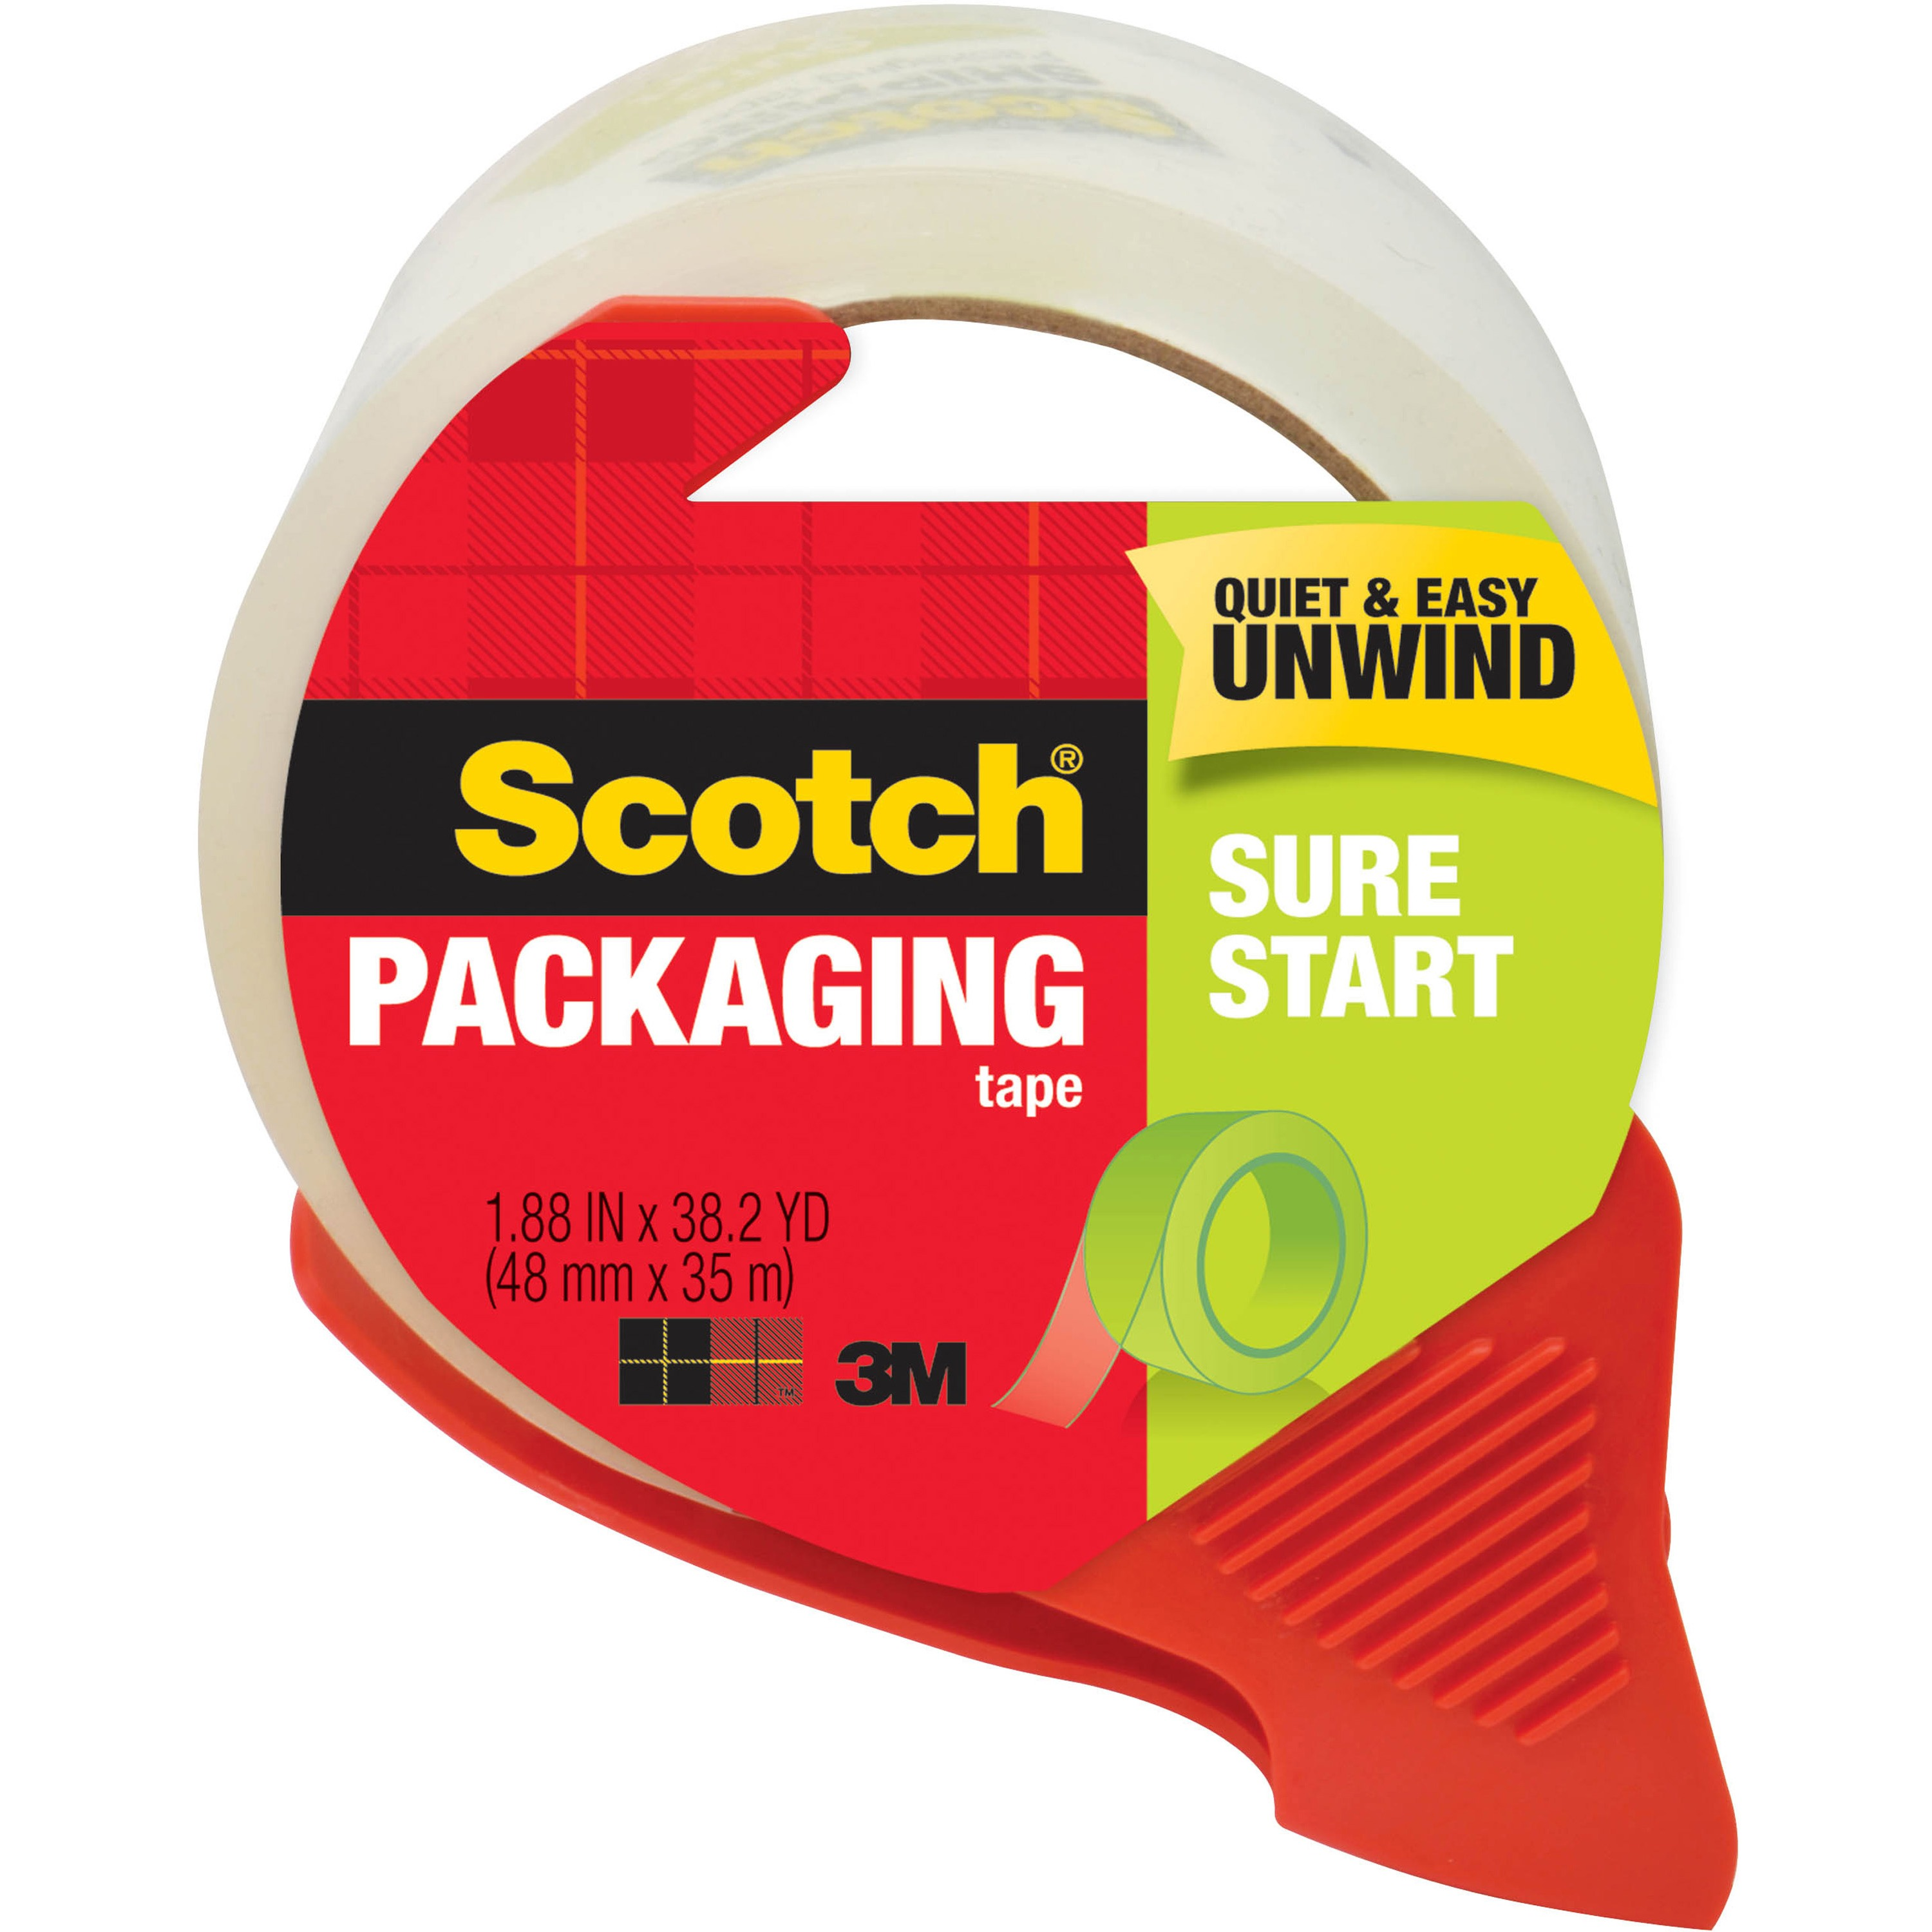 Scotch Sure Start Shipping & Packaging Tape with Dispenser, 1.88 in. x 38.2 yd. per Roll, Clear, 1 Dispenser/Pack